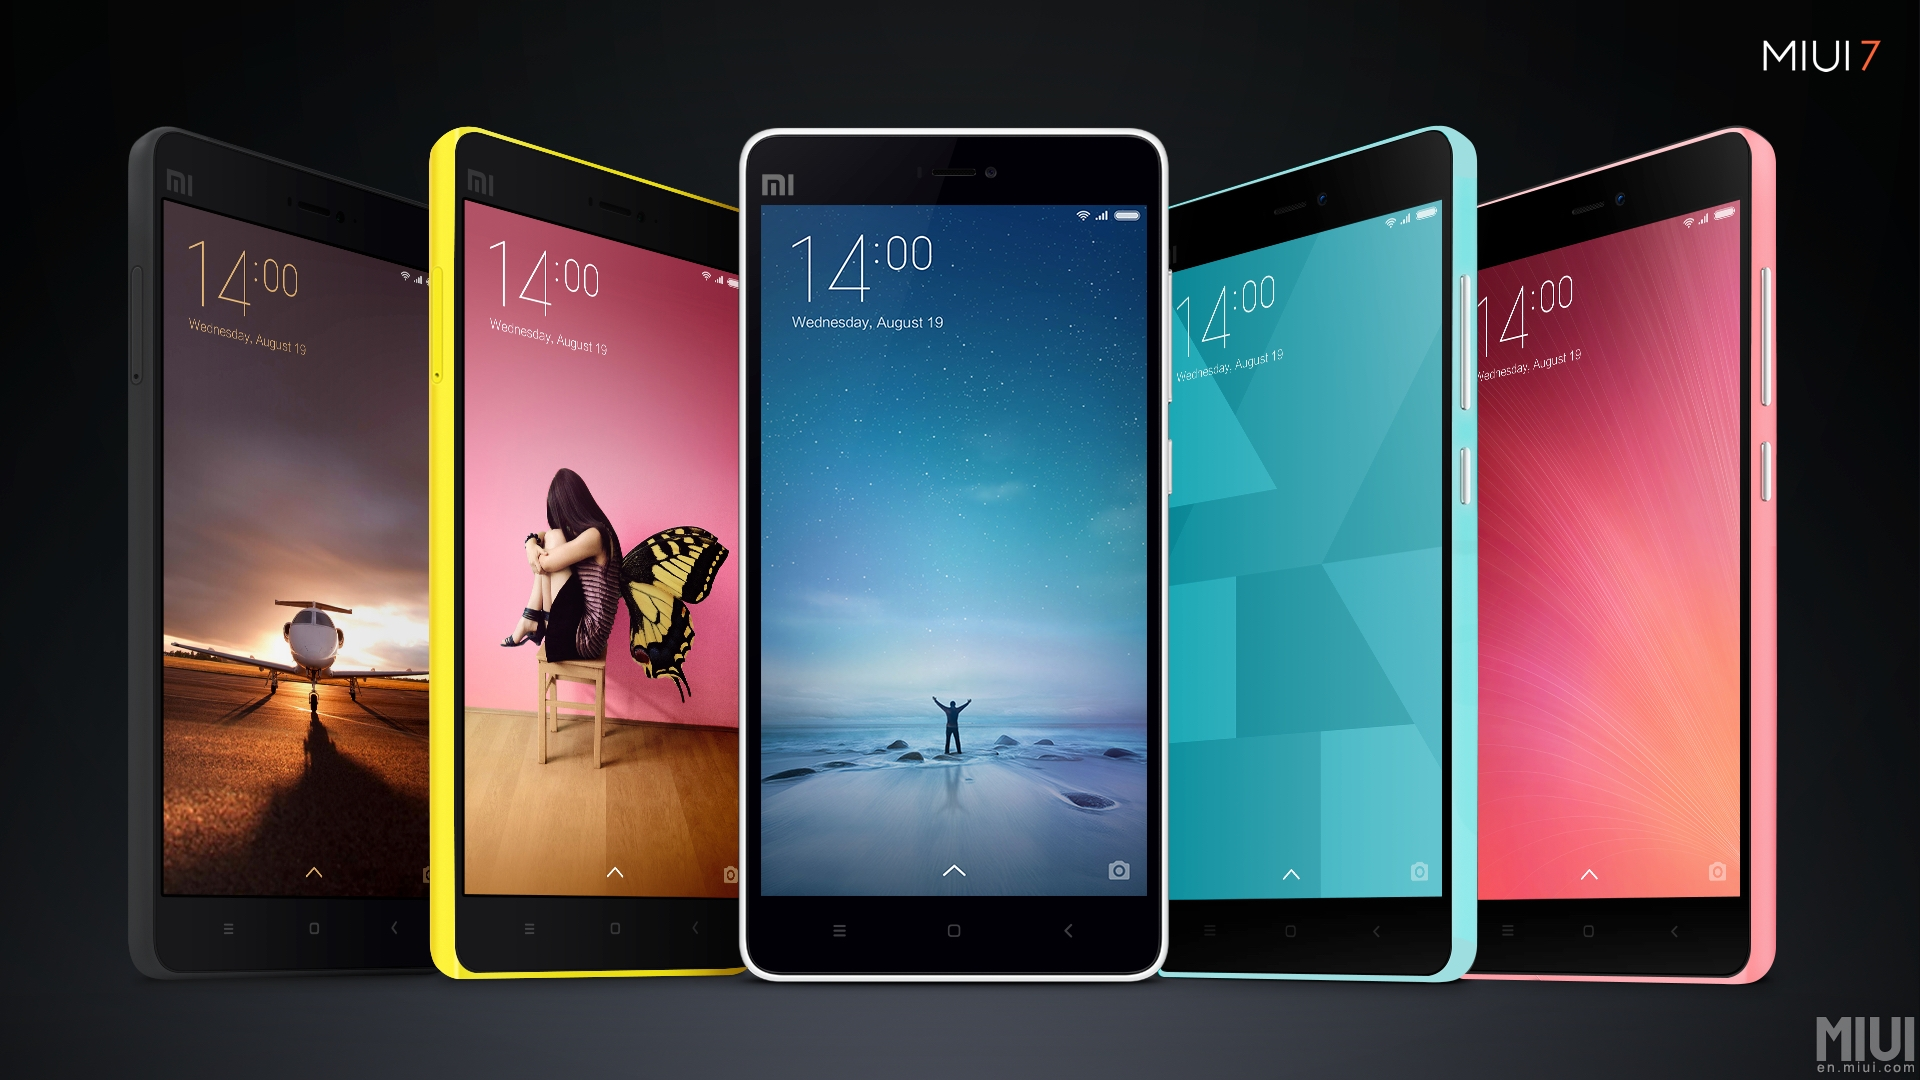 Heres Miui 7 Features Improvements Along With Other Details Xiaomi Redmi 3g Suggests Beta Will Be Available On 1s 2 Mi 3 4 4i Note 4g From August 24